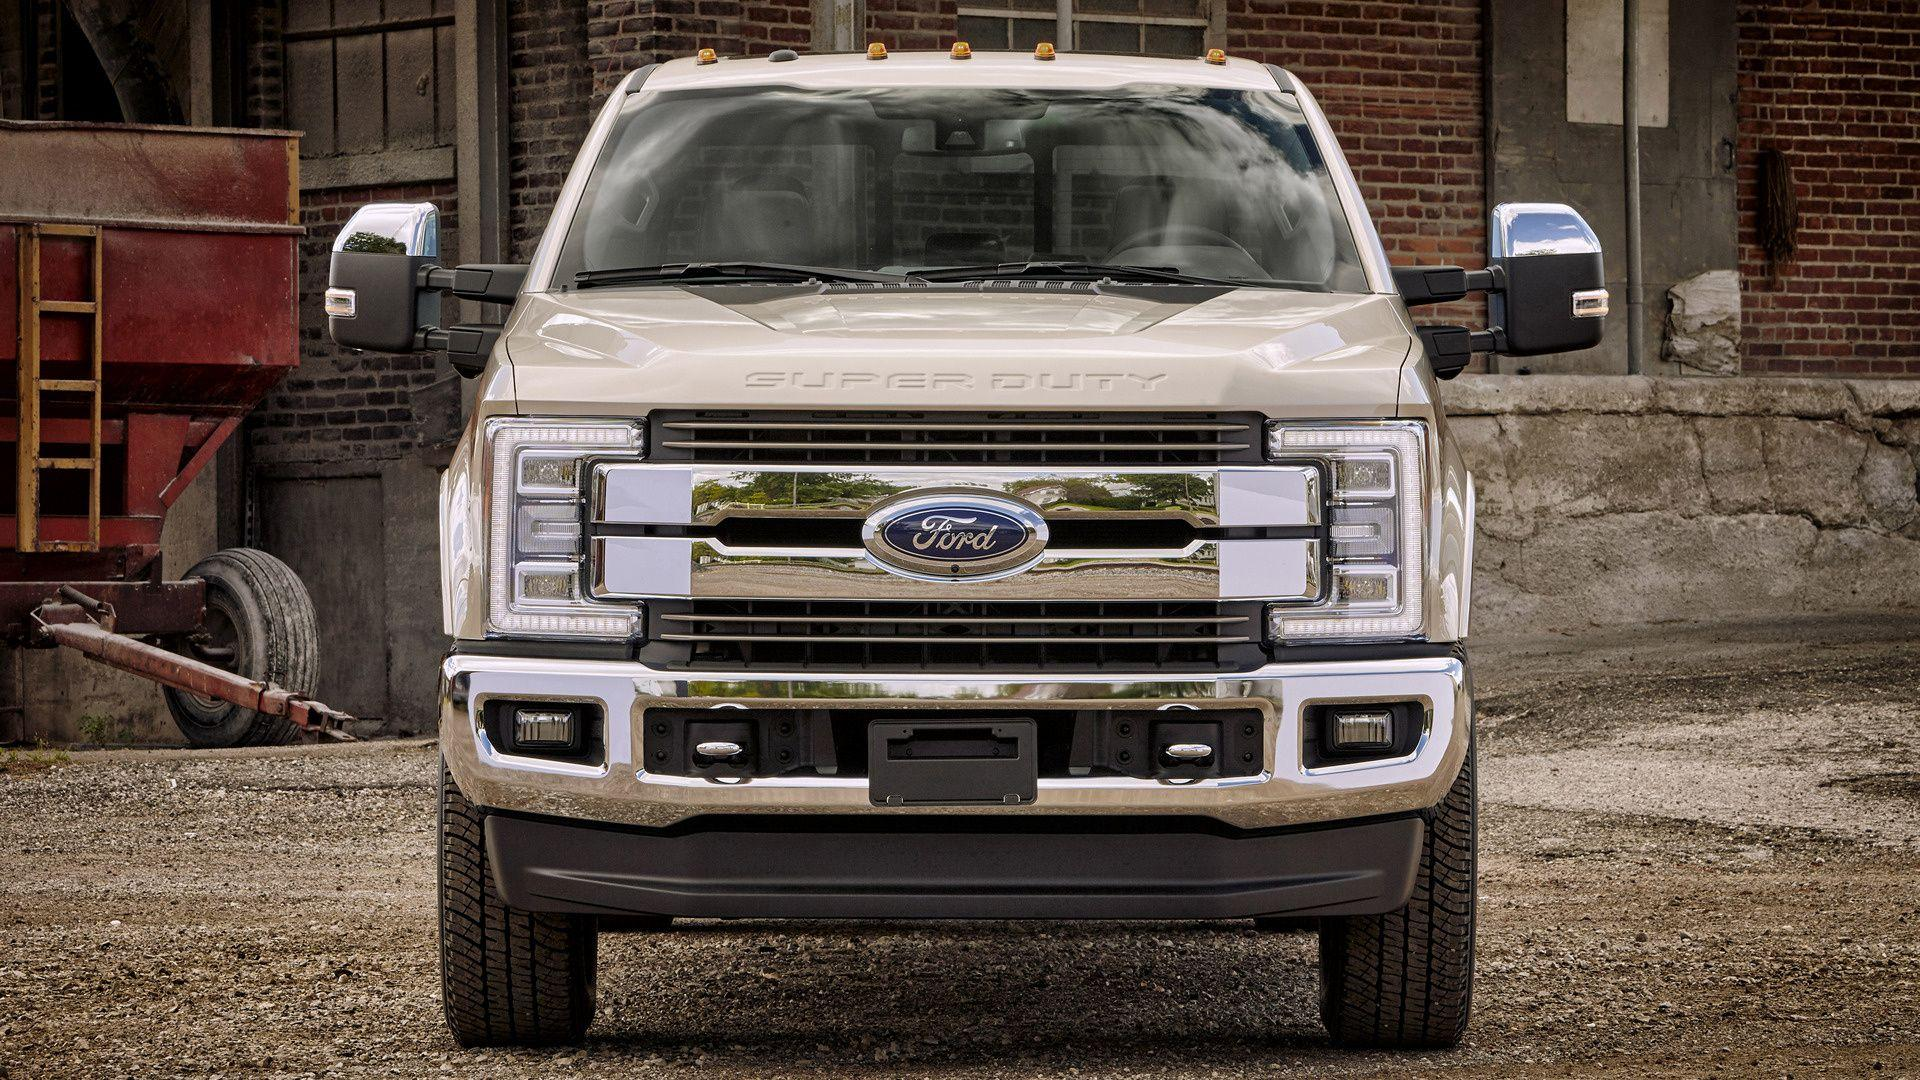 hight resolution of ford f 350 king ranch fx4 crew cab 2017 wallpapers and hd images